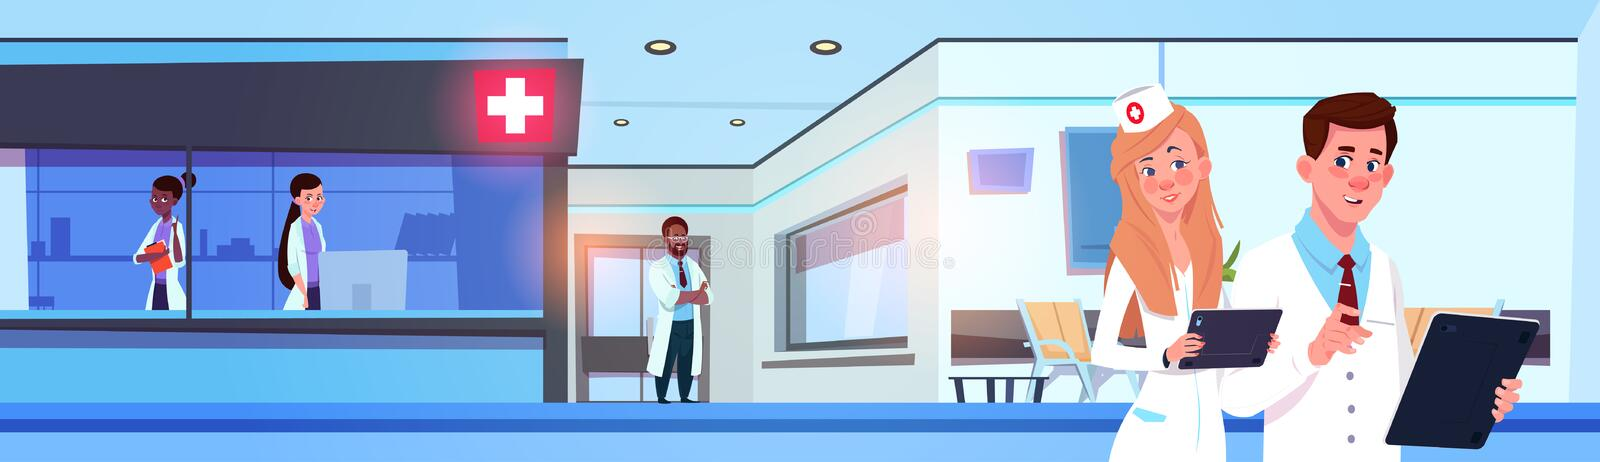 Team Of Professional Doctors In Modern Hospital Or Clinic Working Horizontal Banner royalty free illustration